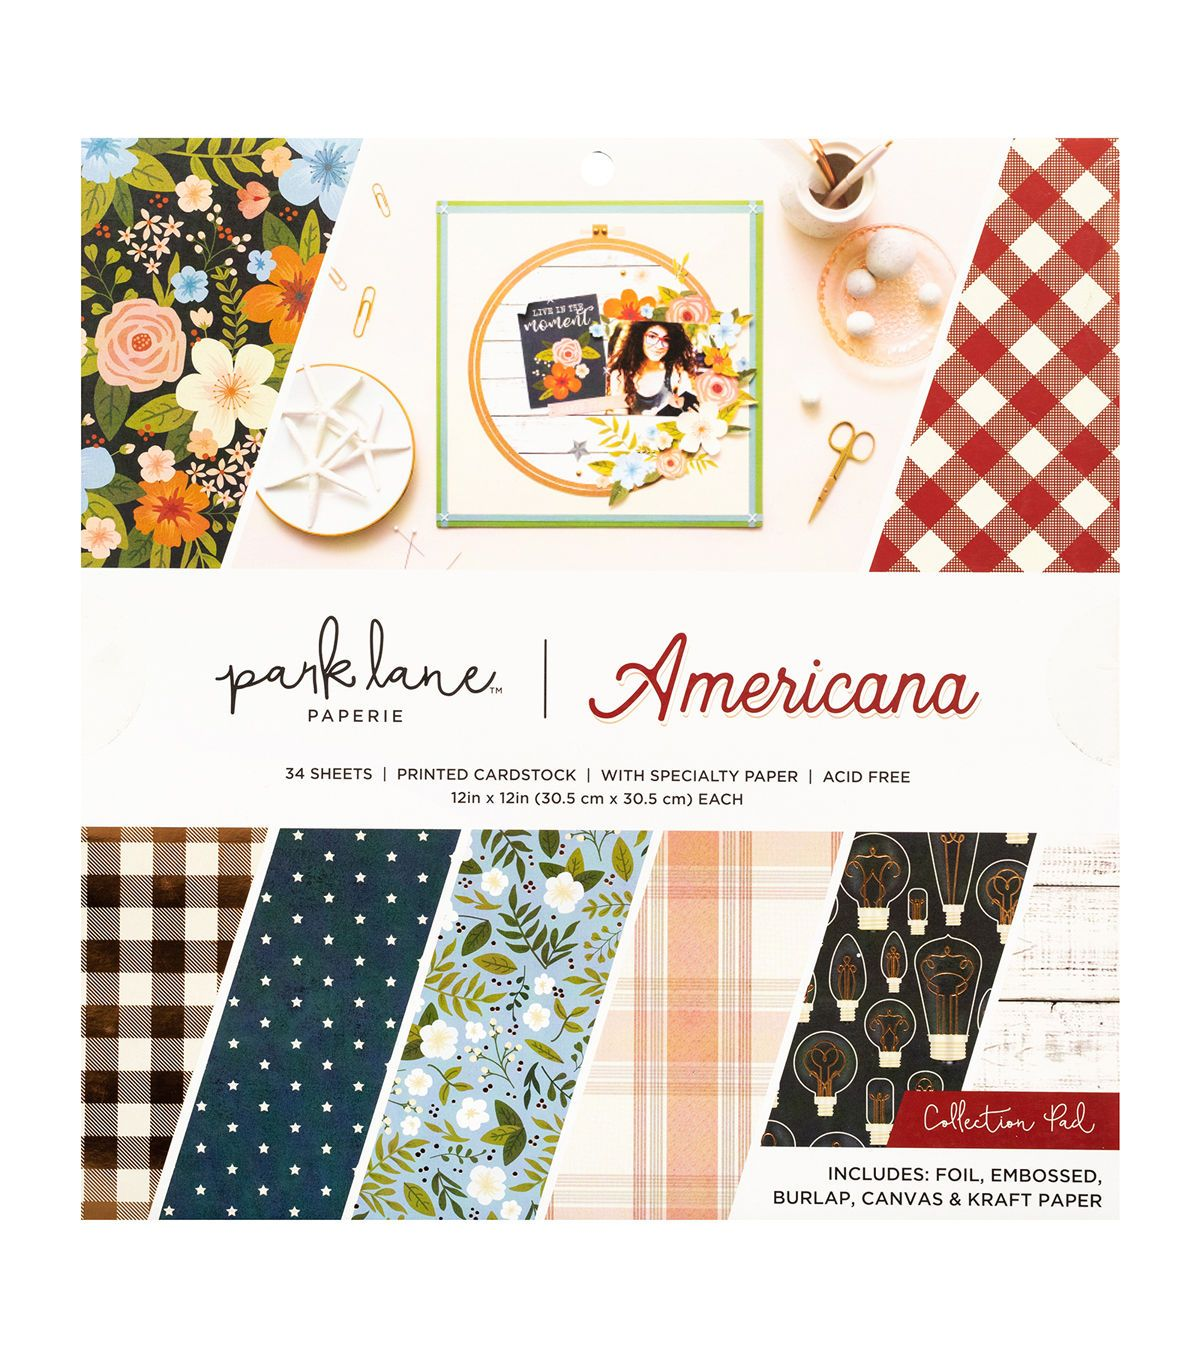 Flea Market American Crafts Cardstock 12 x 12 Paper Pattern Simple Antique